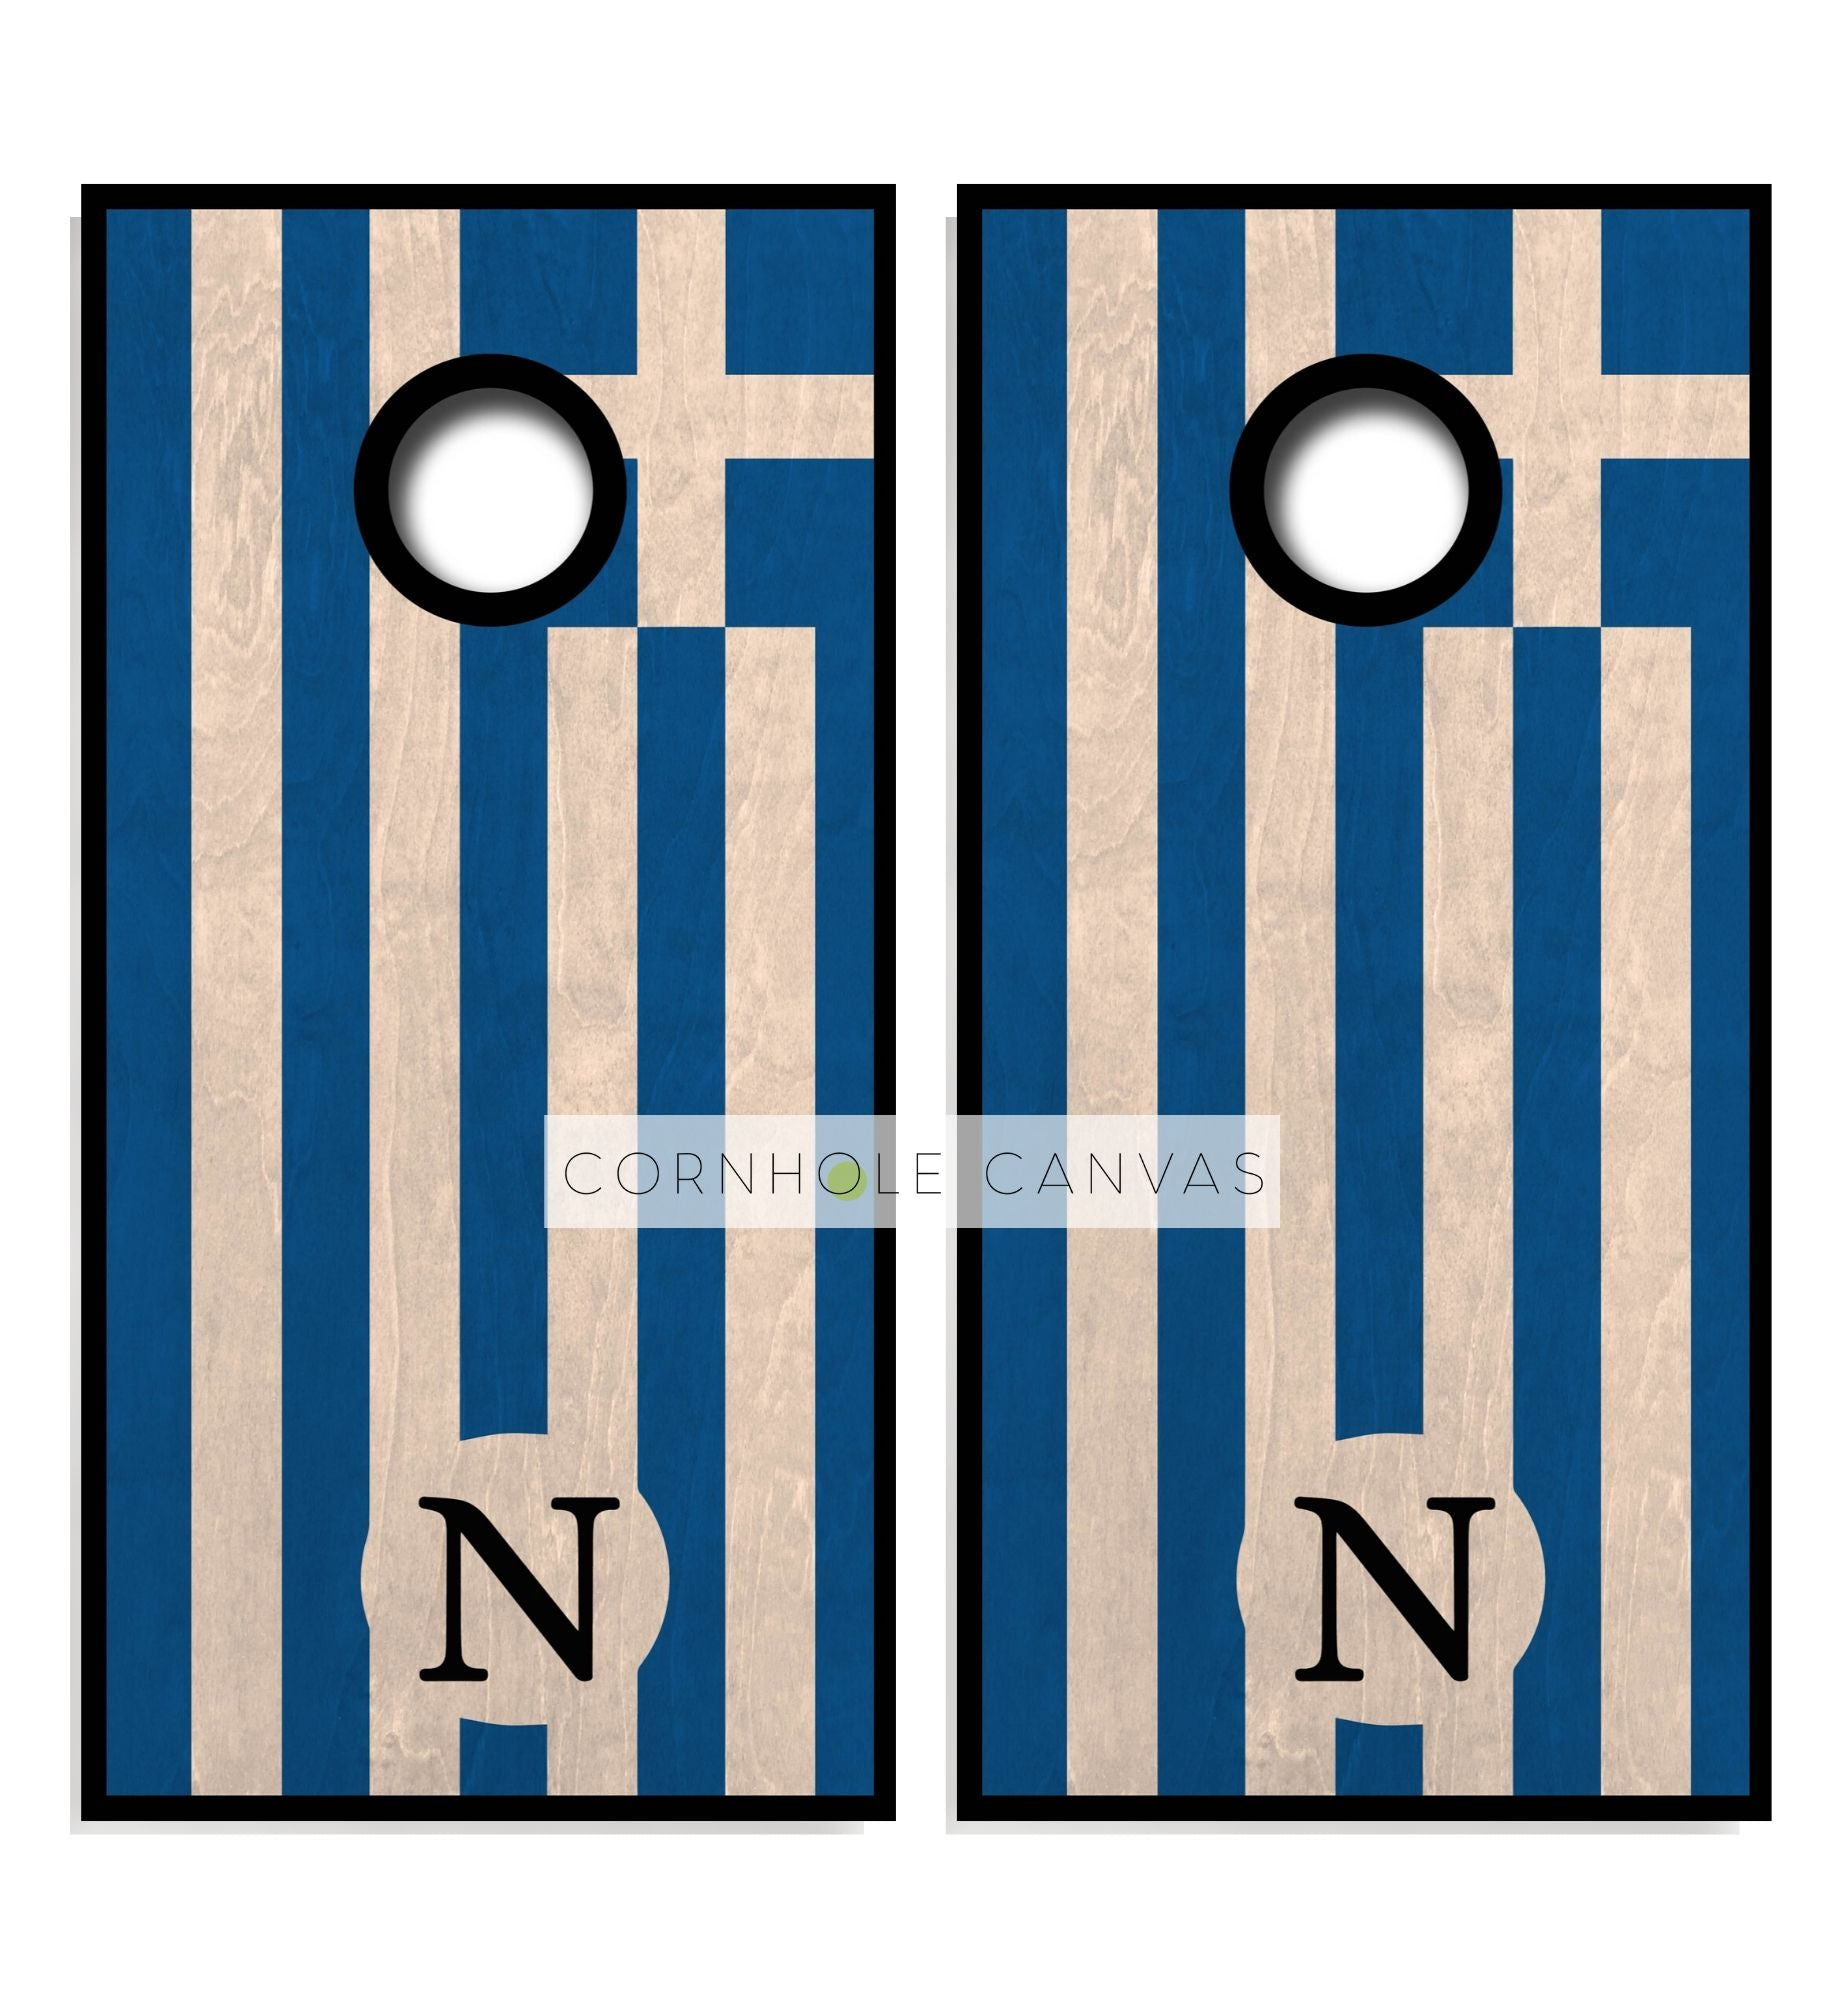 Greek Flag Cornhole Boards - Regulation Size and Hand Crafted.